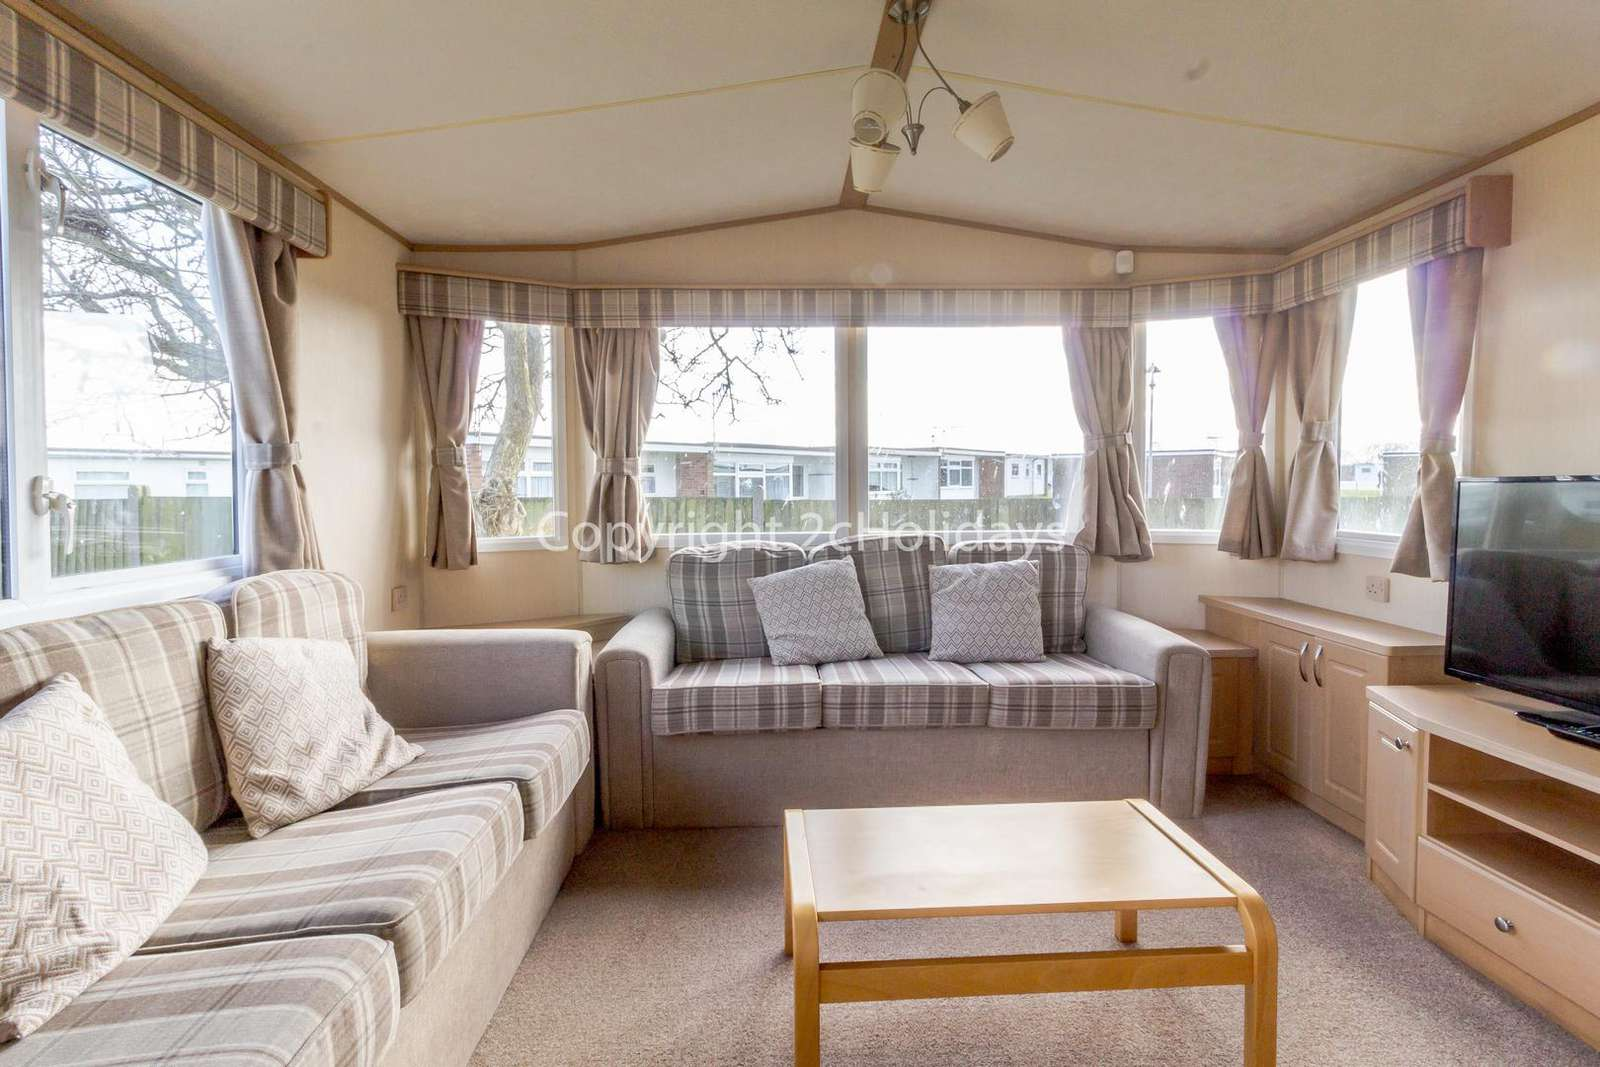 50006B – Bittern area, 3 bed, 8 berth caravan with C/H and D/G. Ruby rated. - property